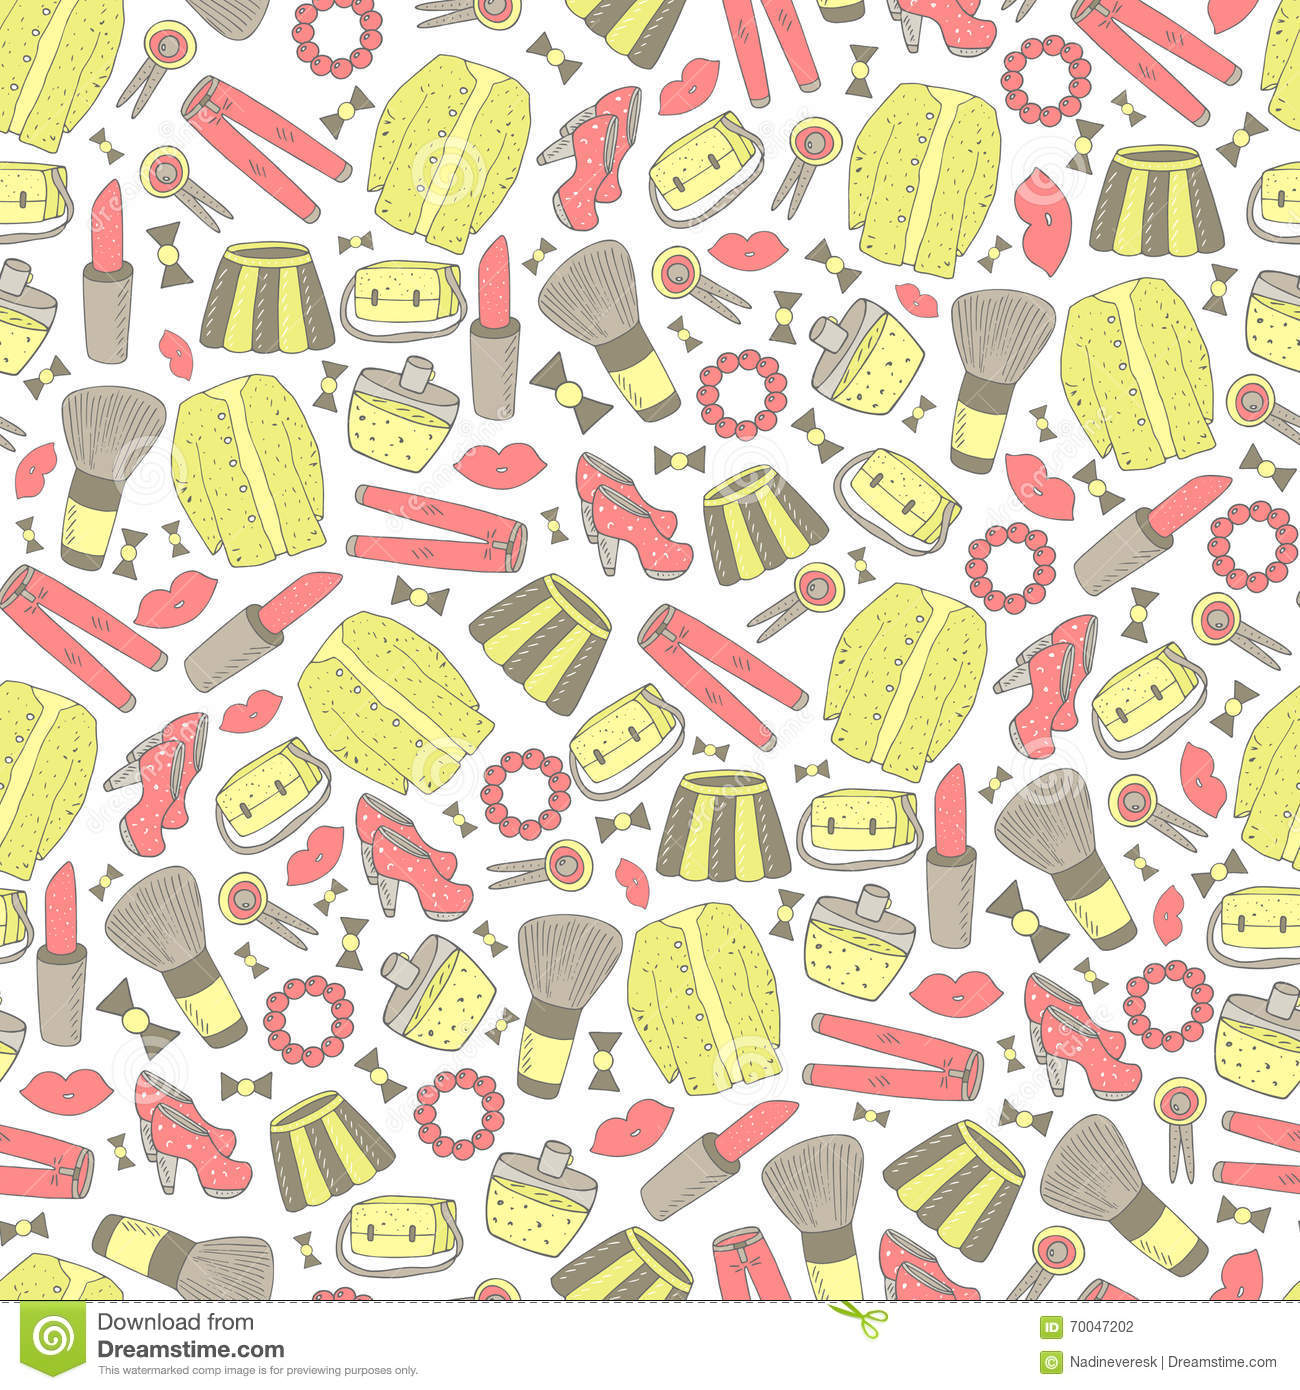 Cute Doodle Girl Fashion Seamless Pattern. Vector